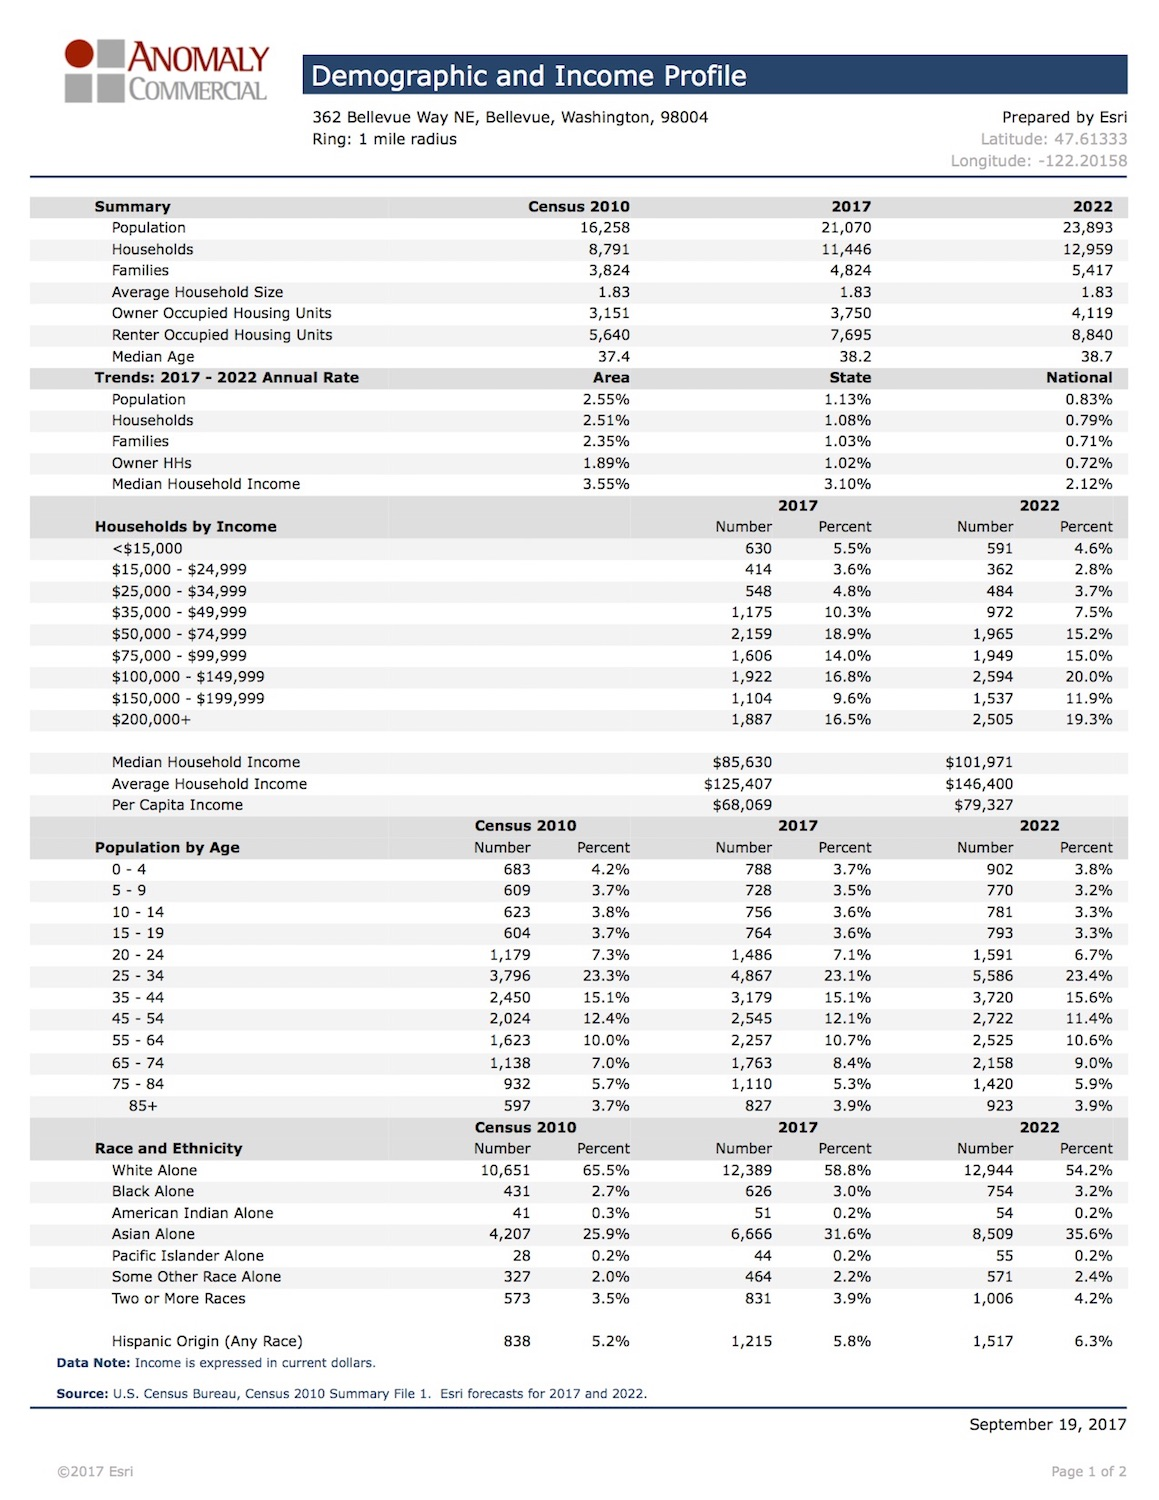 Demographic & Income Profile - Avalon Meydenbaur.jpg